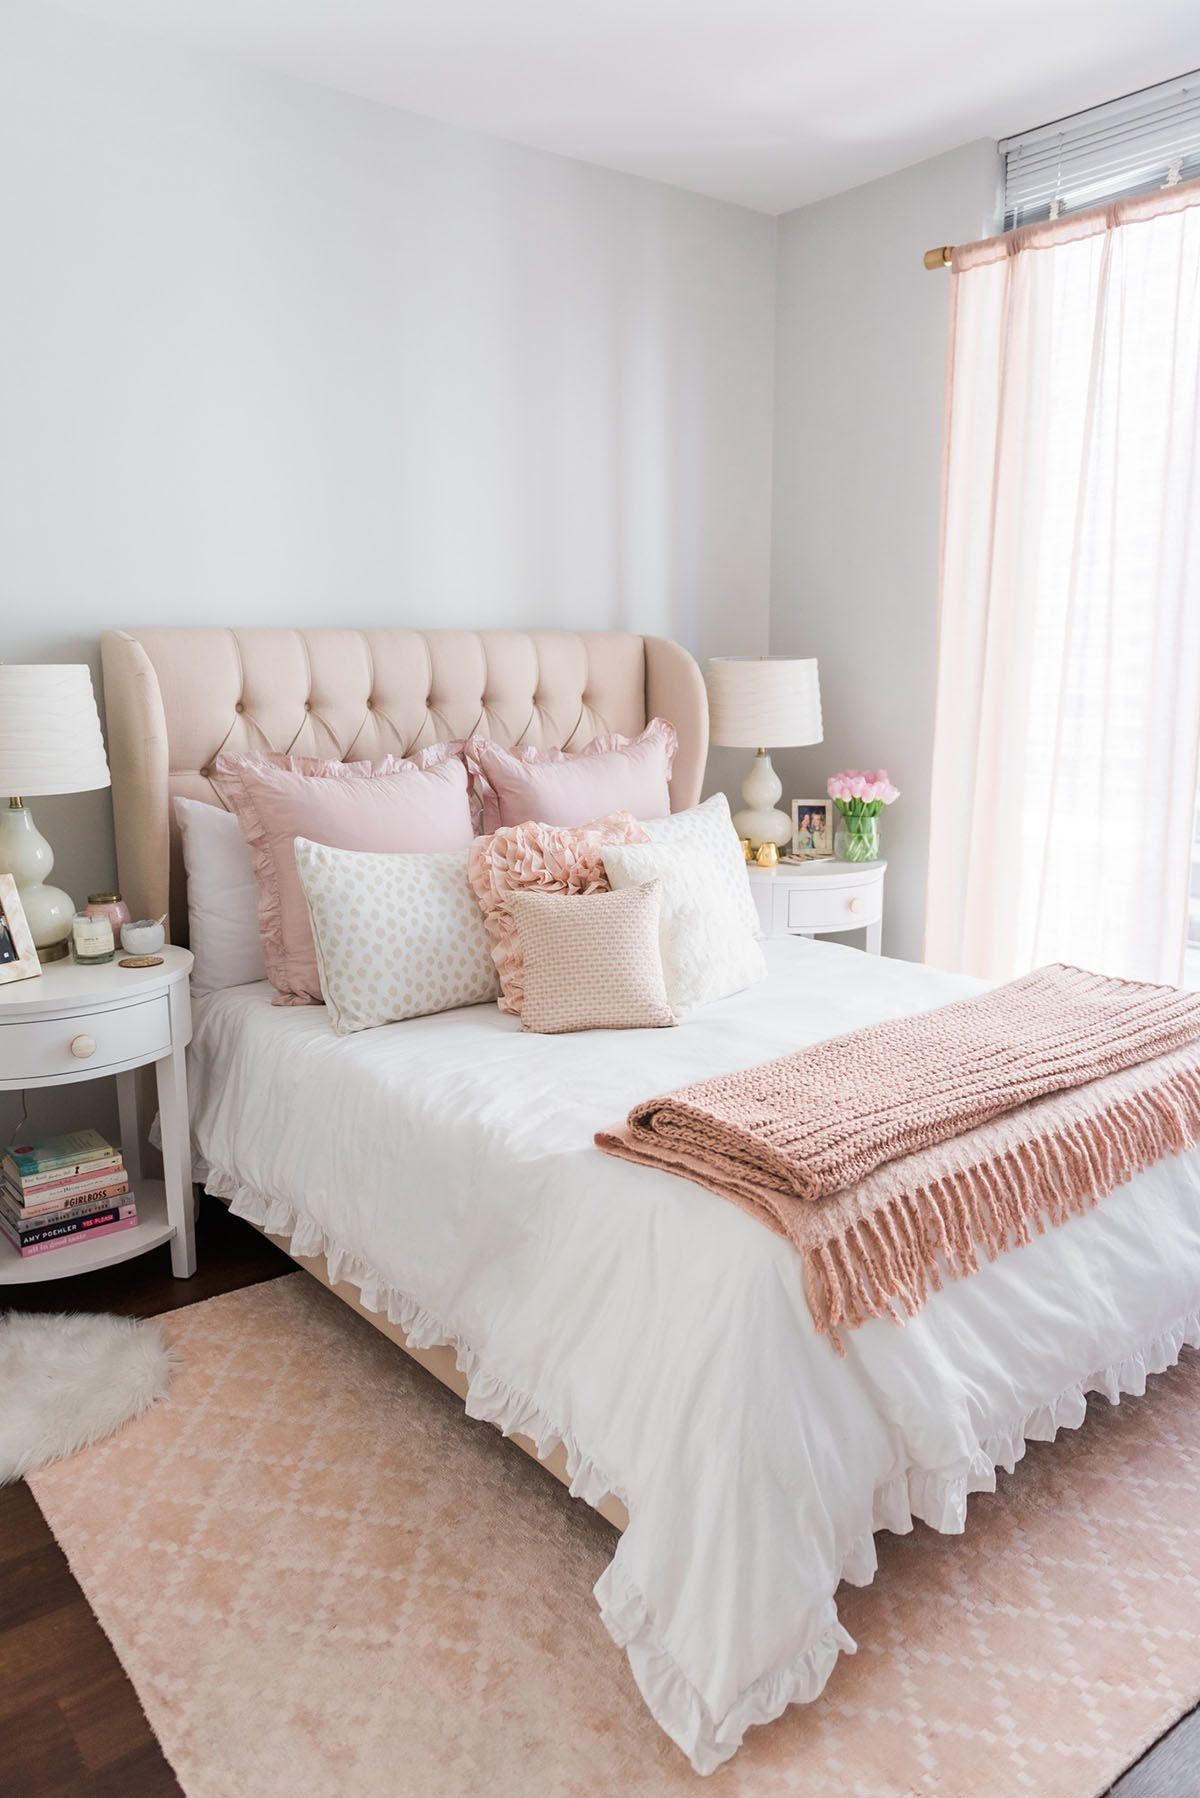 My Chicago Bedroom Parisian Chic Blush Pink Room Decor